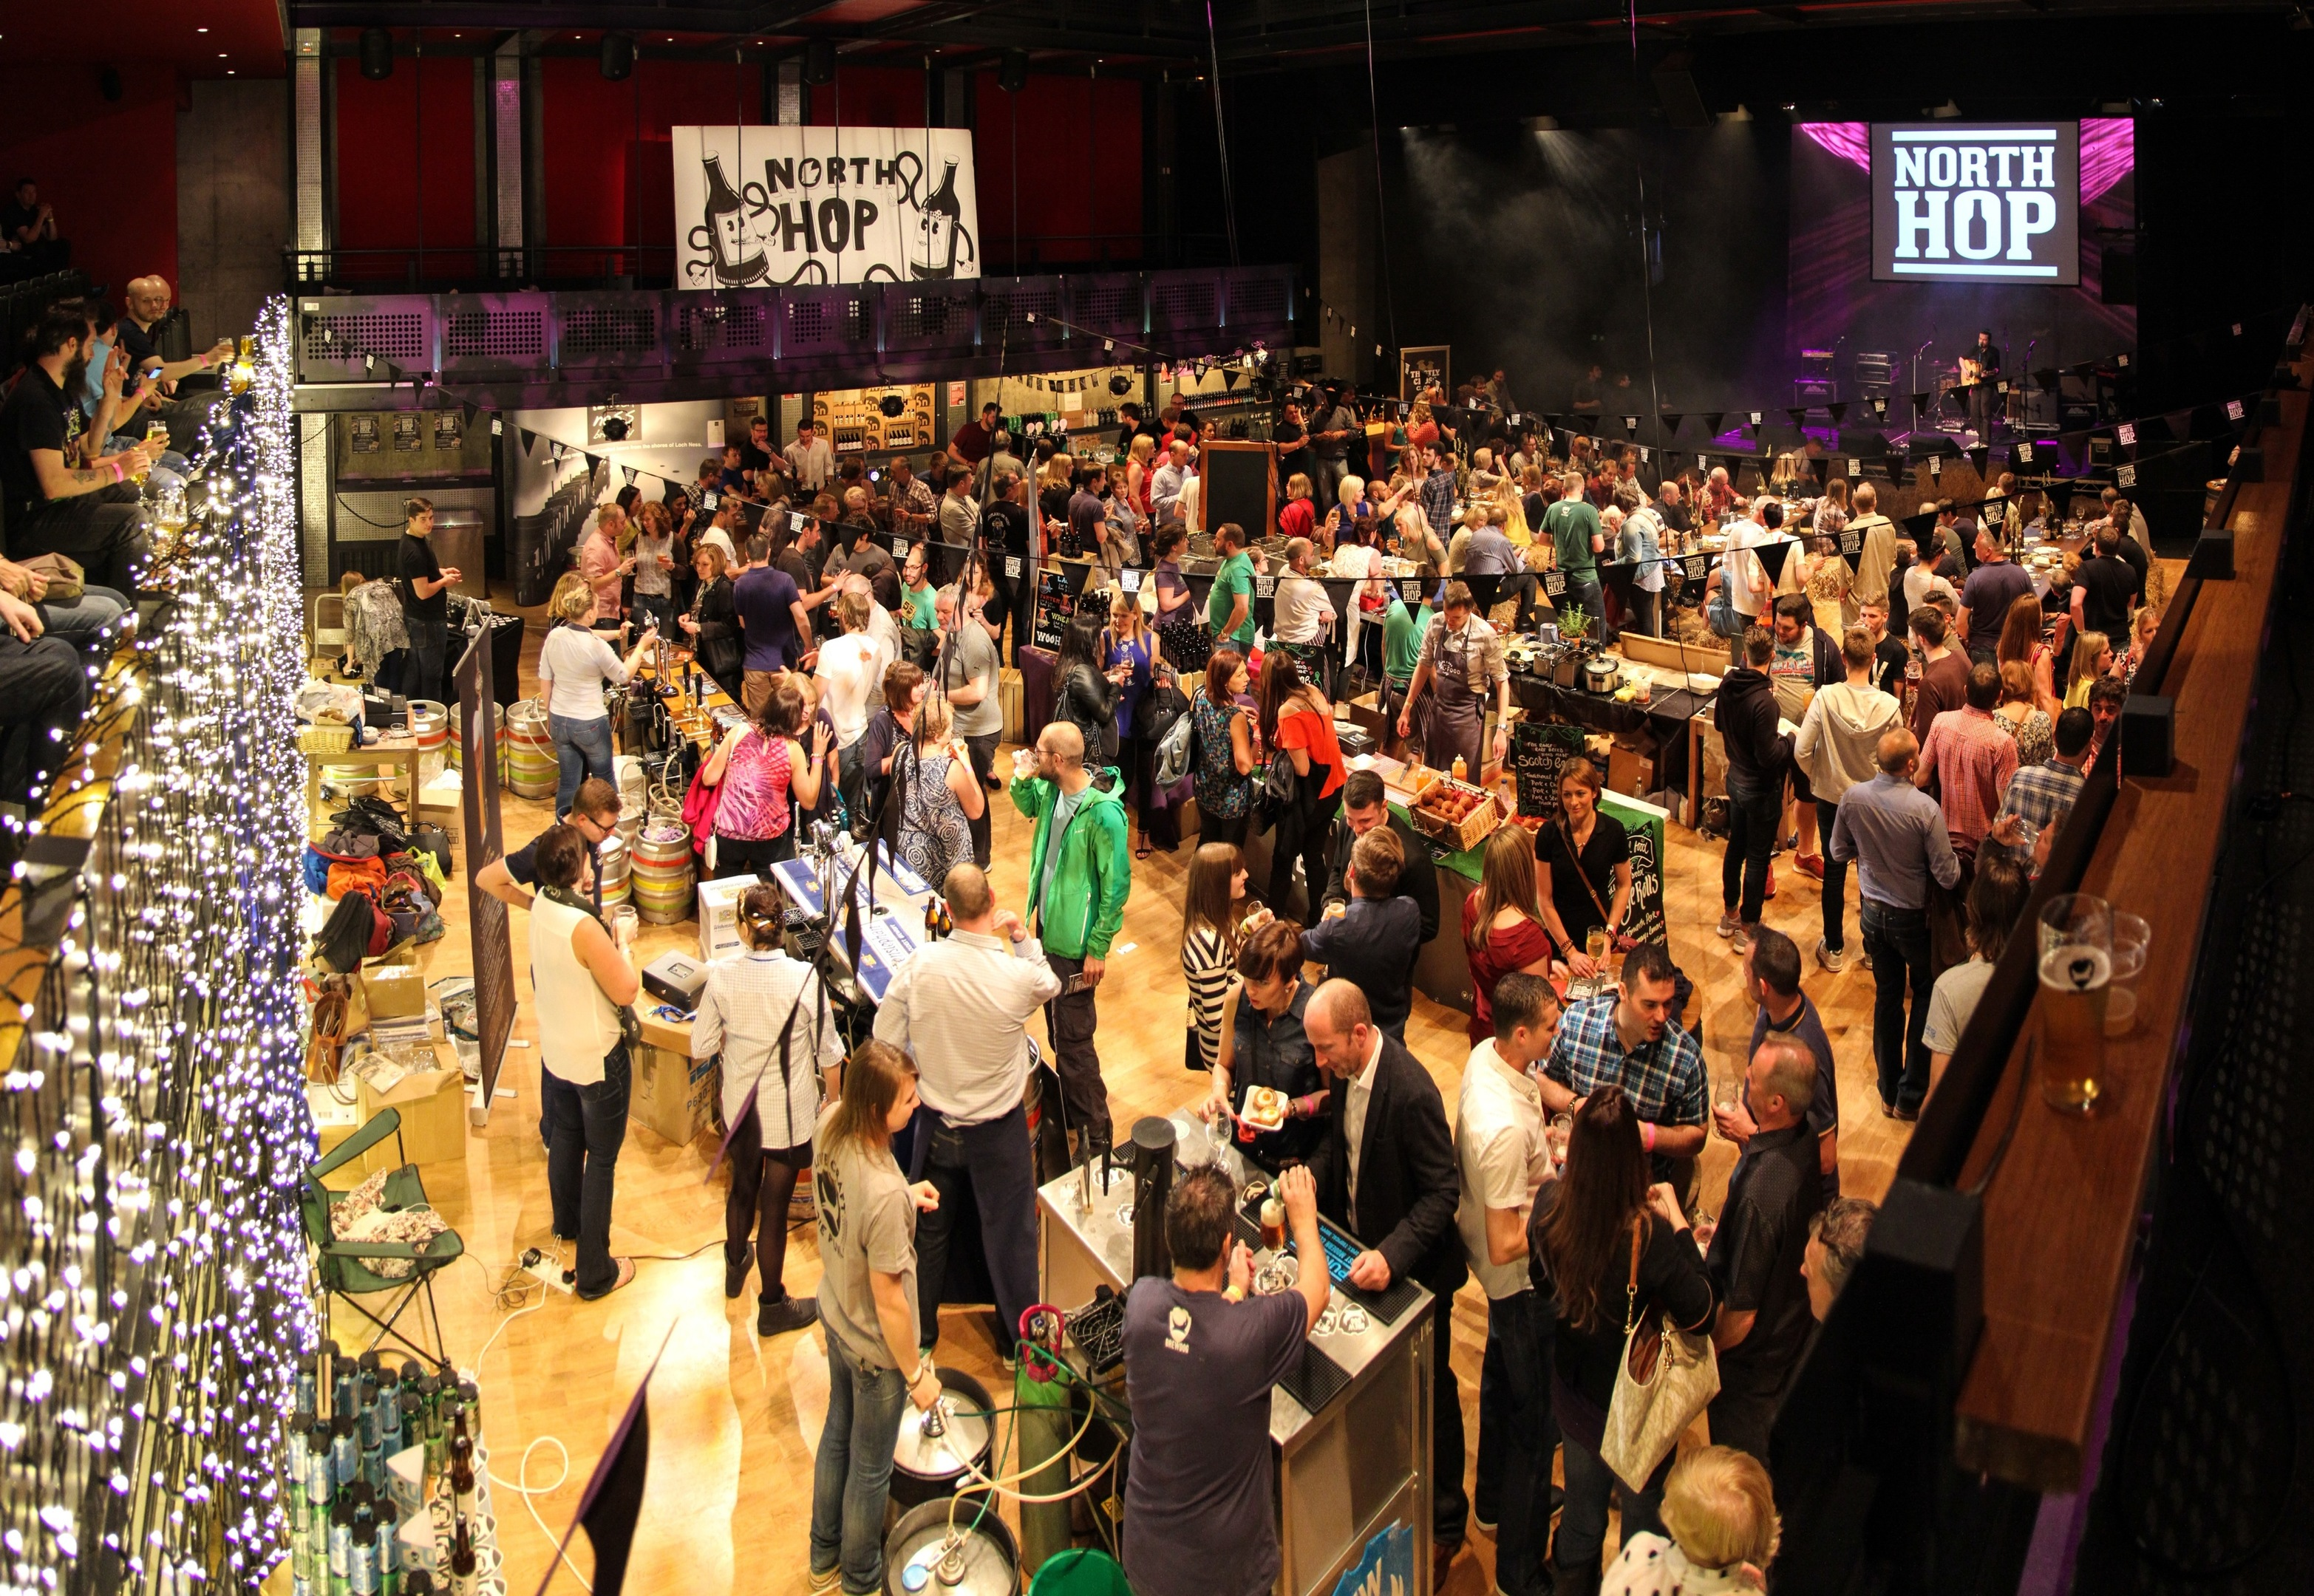 North Hop has been hailed as a success